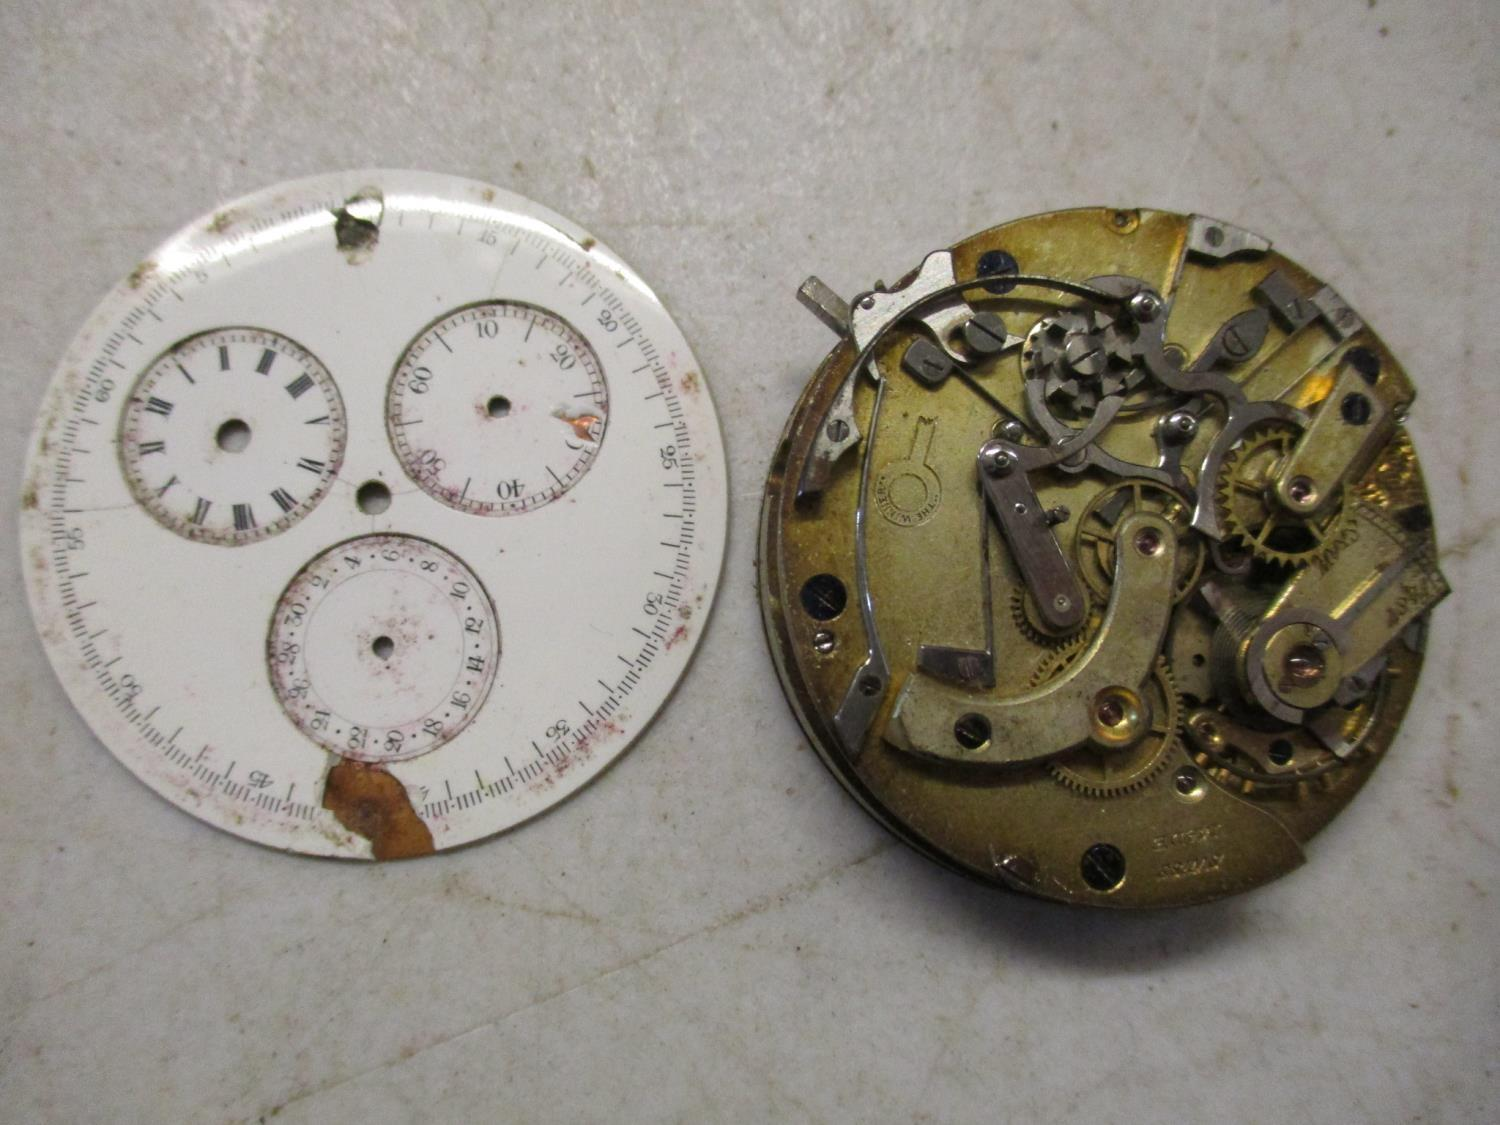 Chronograph pocket watch parts to include a Baume and Mercier A/F Location: Cabs - Image 4 of 5